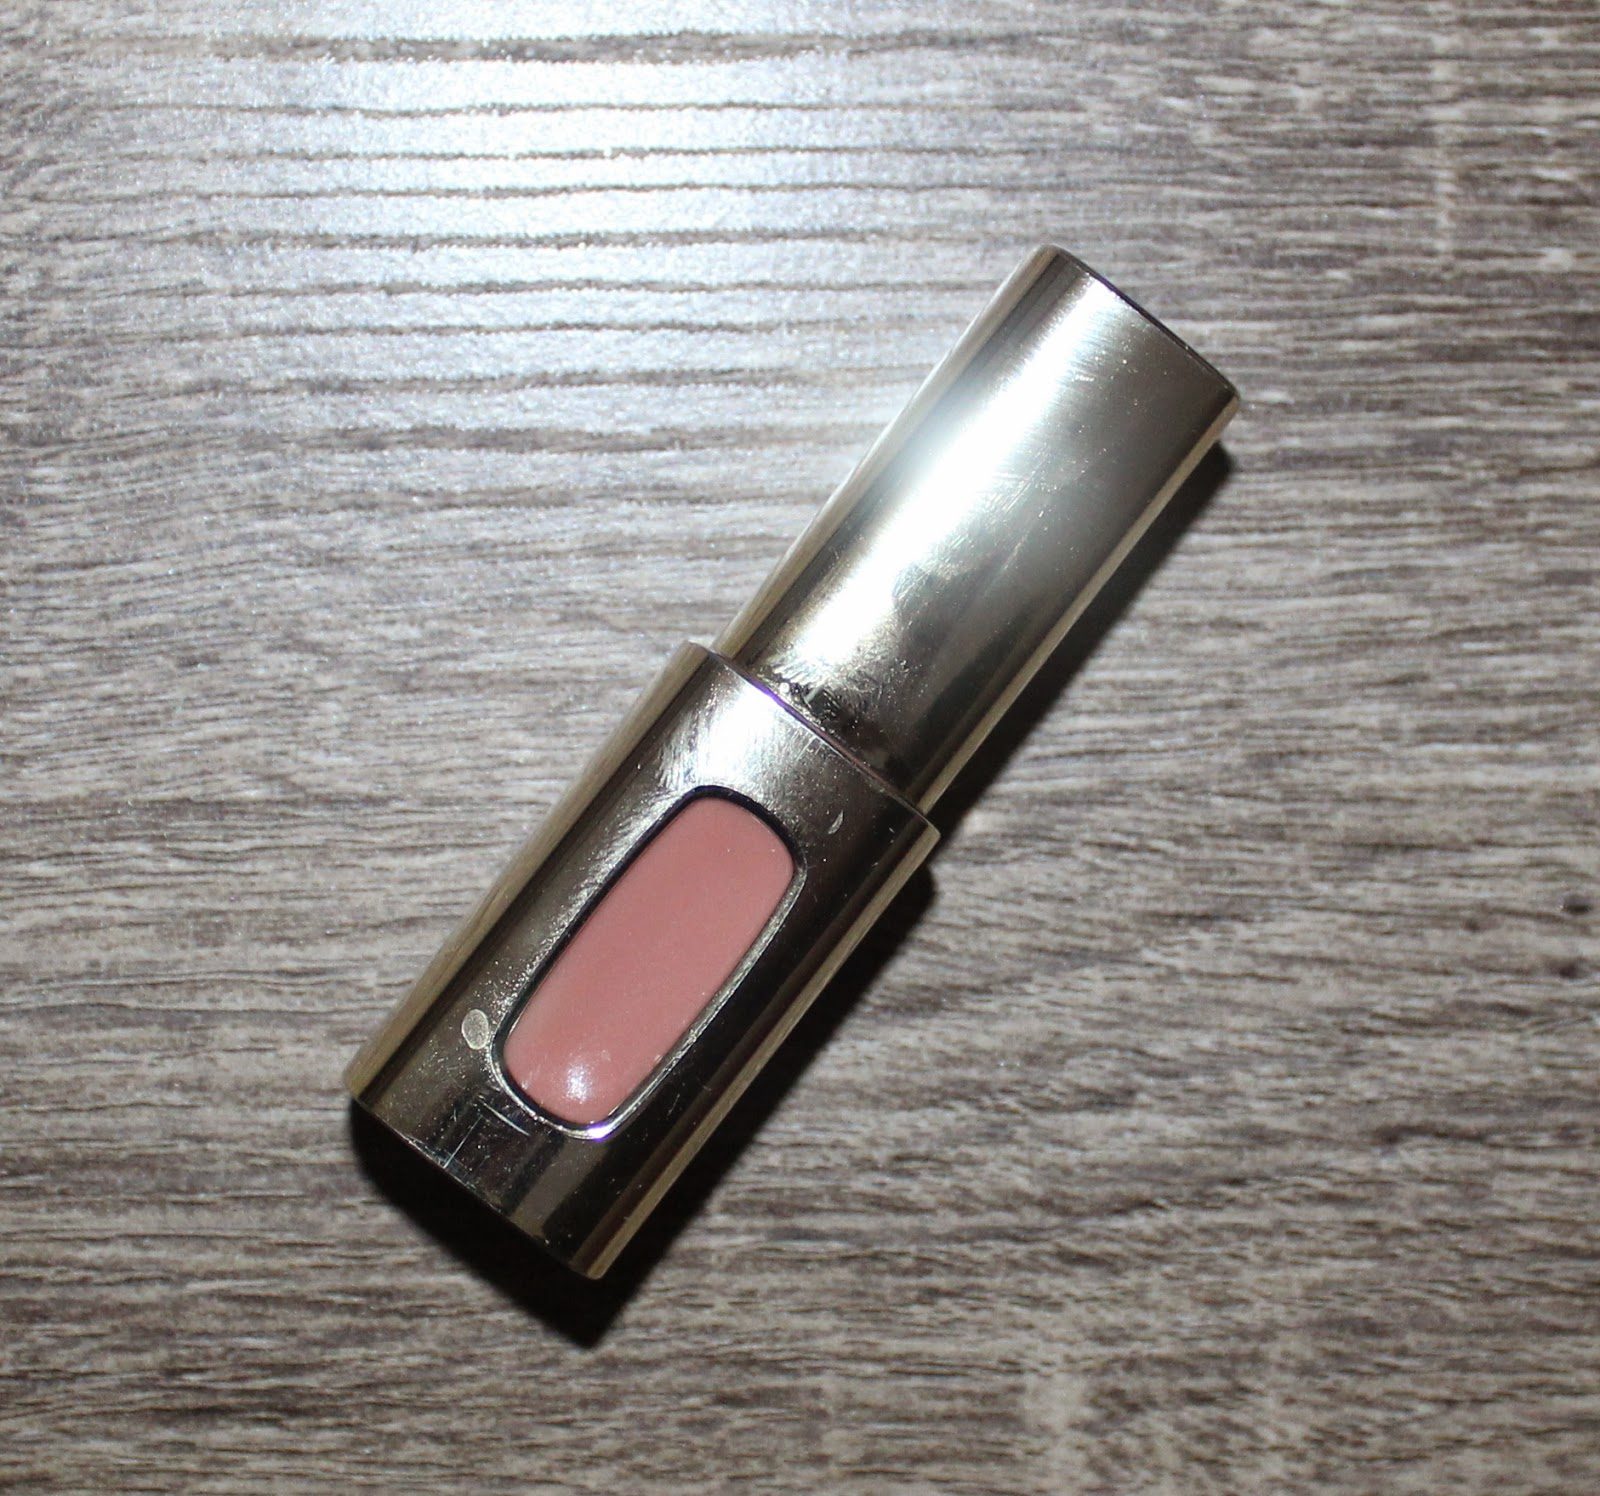 L'Oreal Extraordinaire by Colour Riche in Nude Ballet